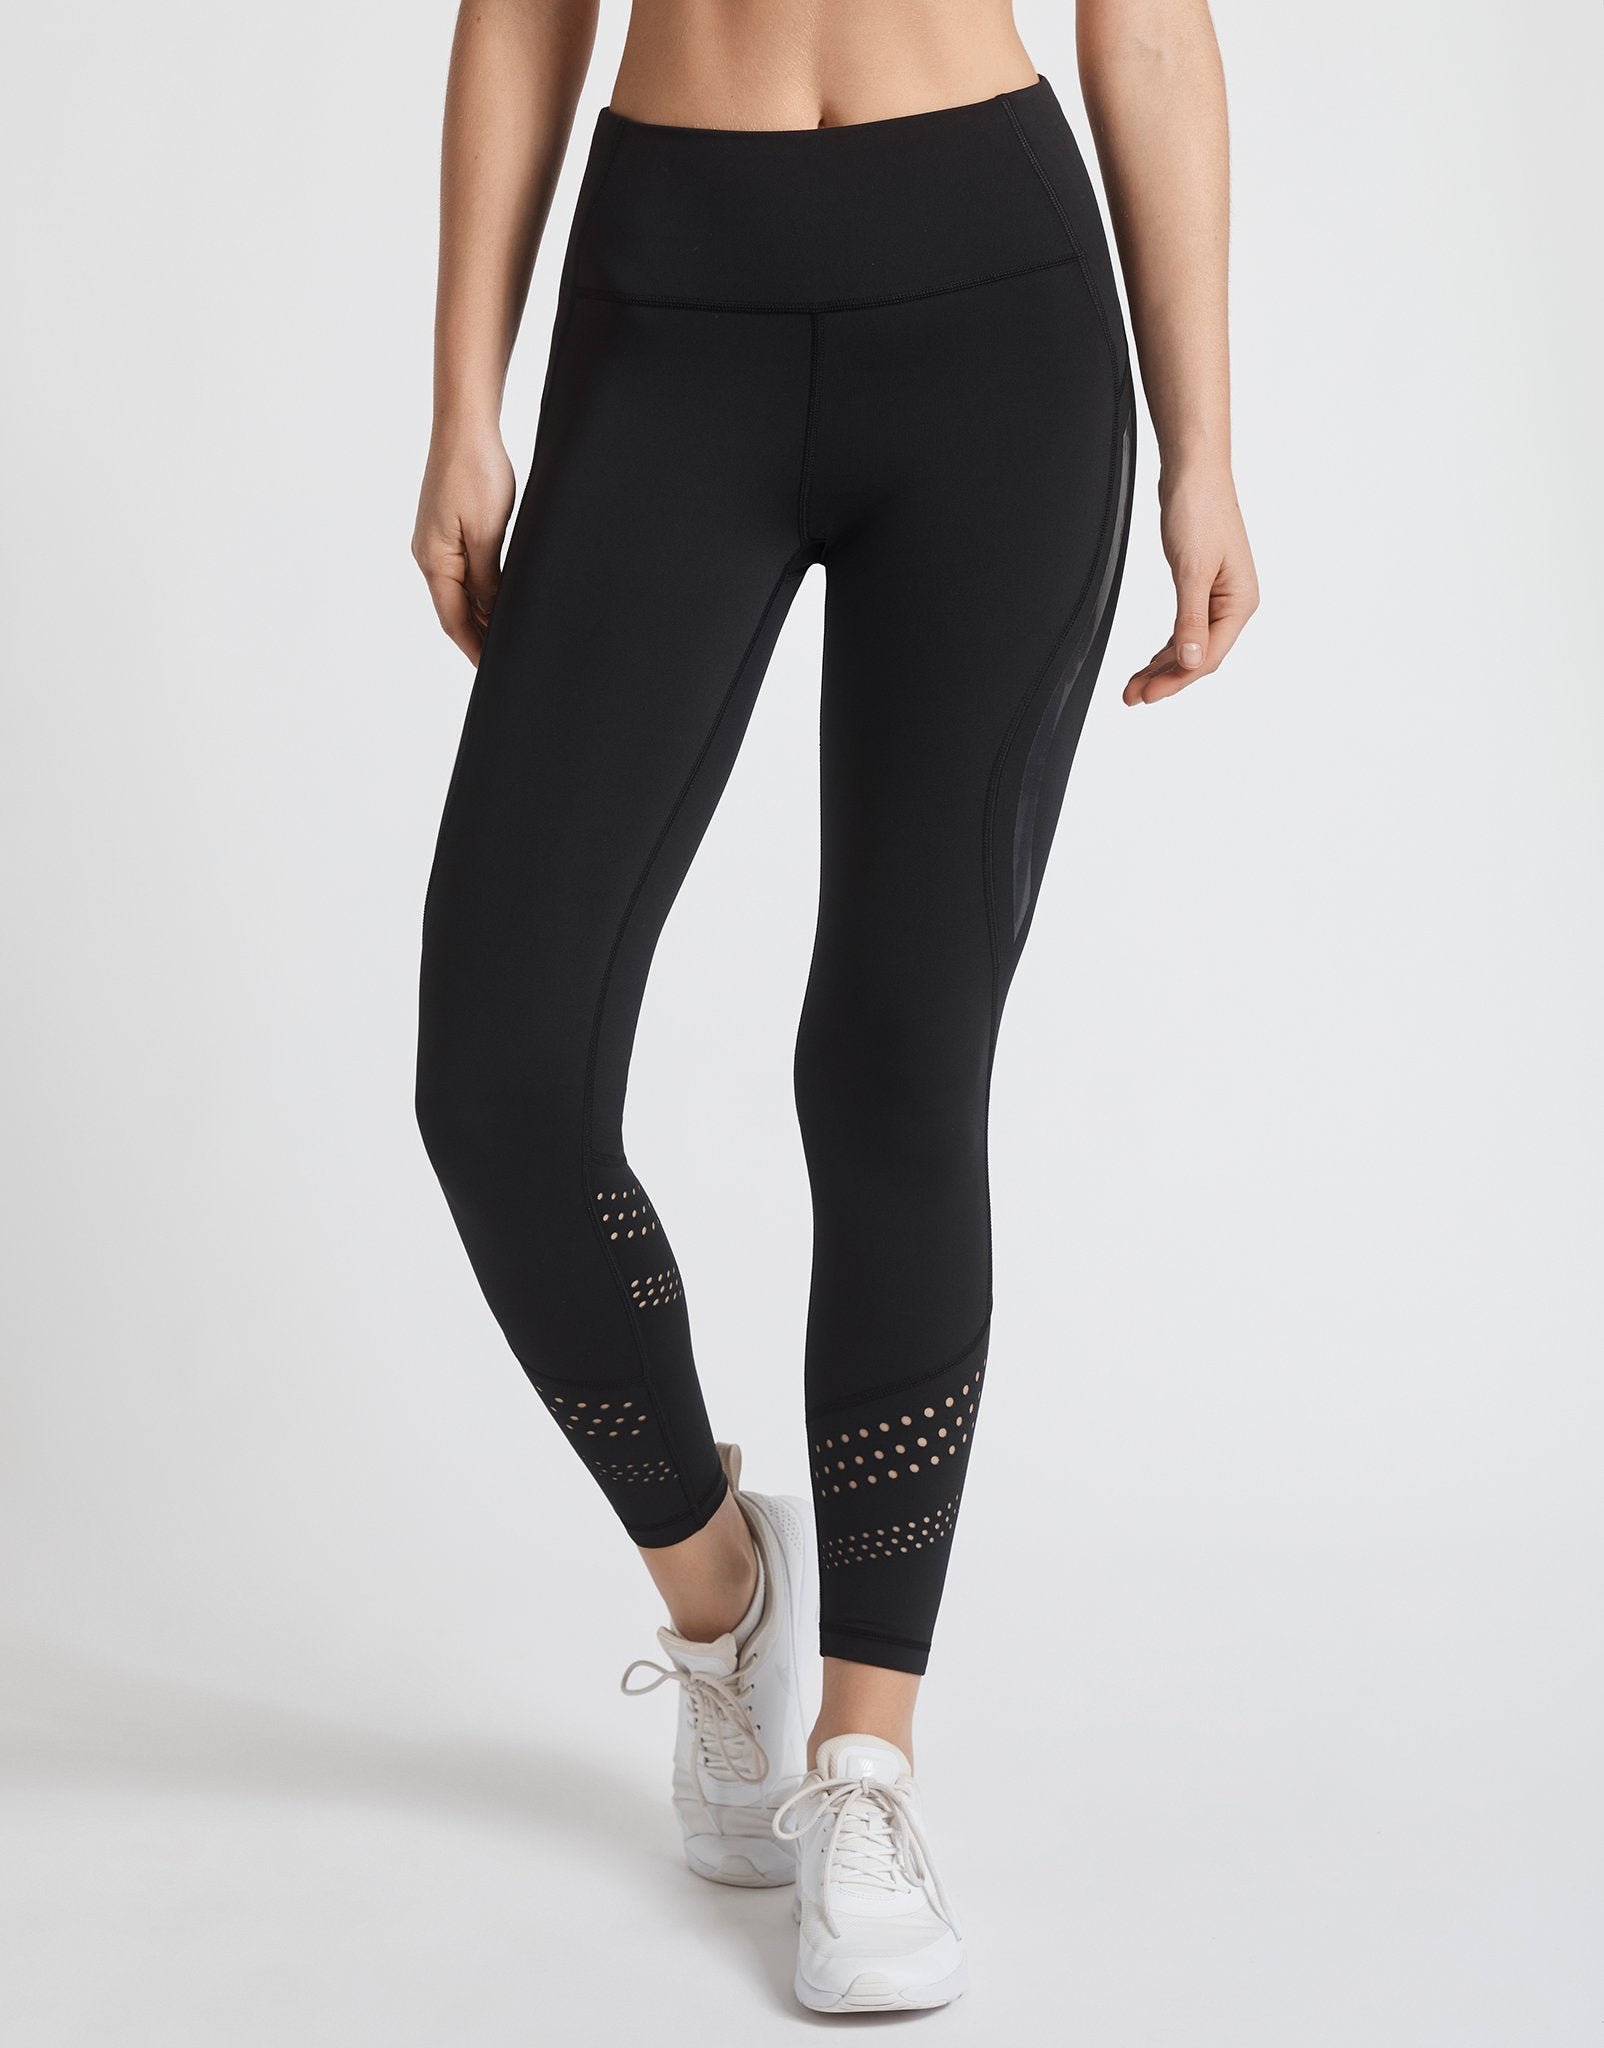 Lilybod-Ariel-Monochrome-Black-Full-Legging-side2.jpg